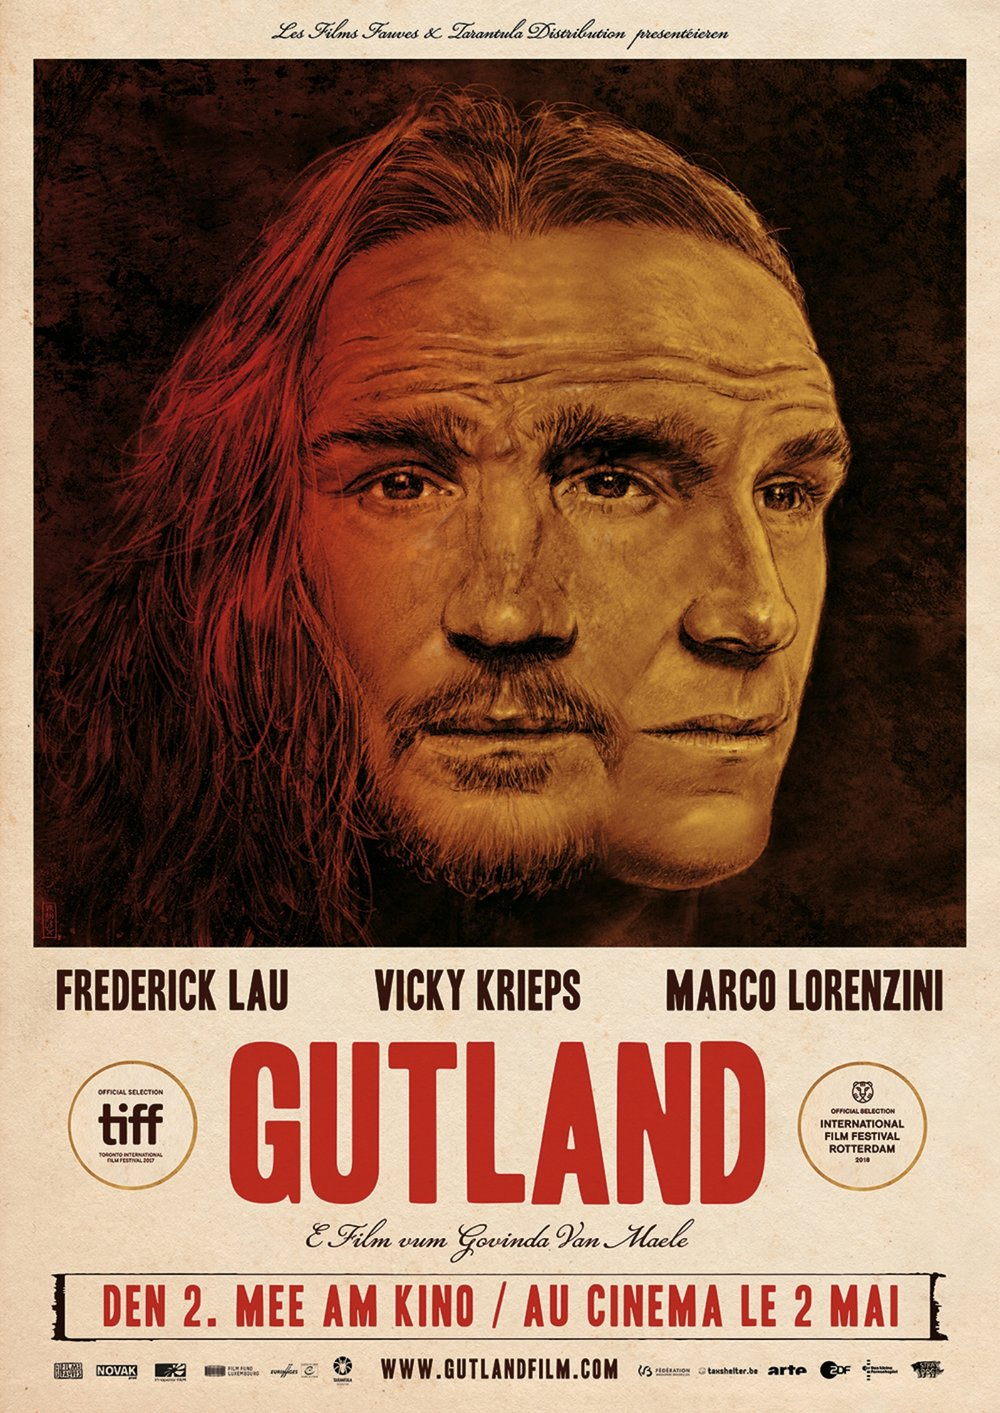 GUTLAND  Feature film directed by Govinda Van Maele, in co-production with Novak Prod (BE) and Propellerfilm (DE)